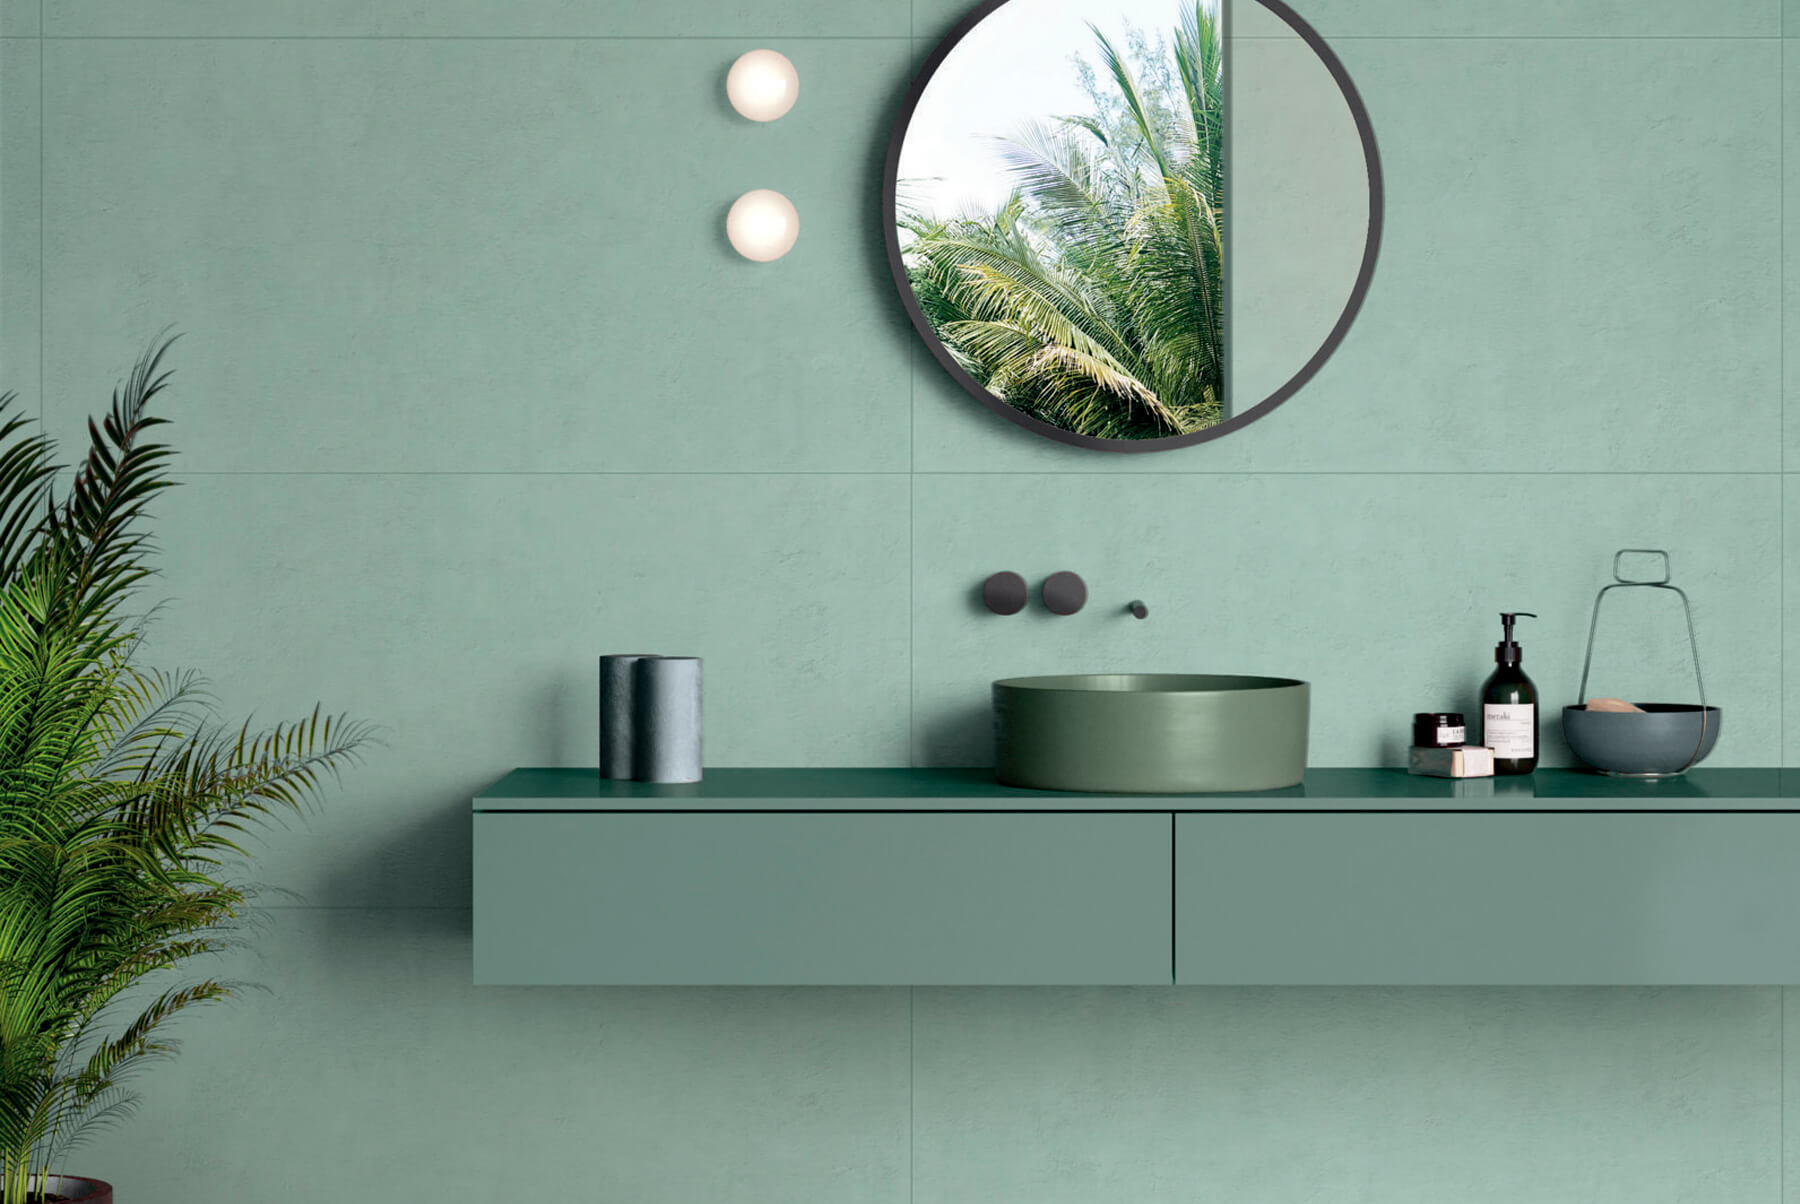 TILES-WIDE-&-STYLE-MINI-INSET-8-1800x1204